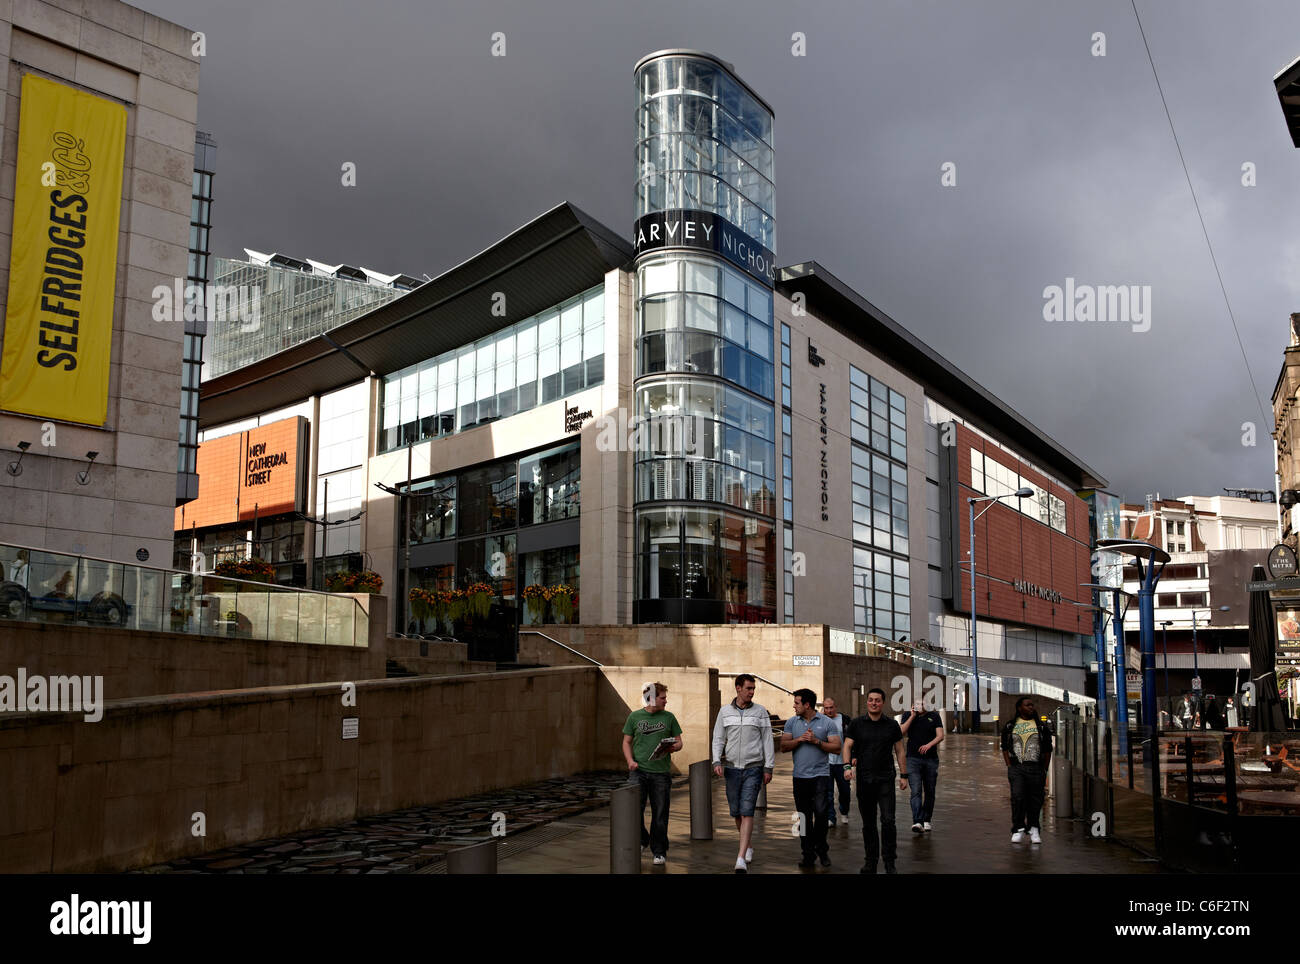 Harvey Nichols store New Cathedral Street Manchester - Stock Image